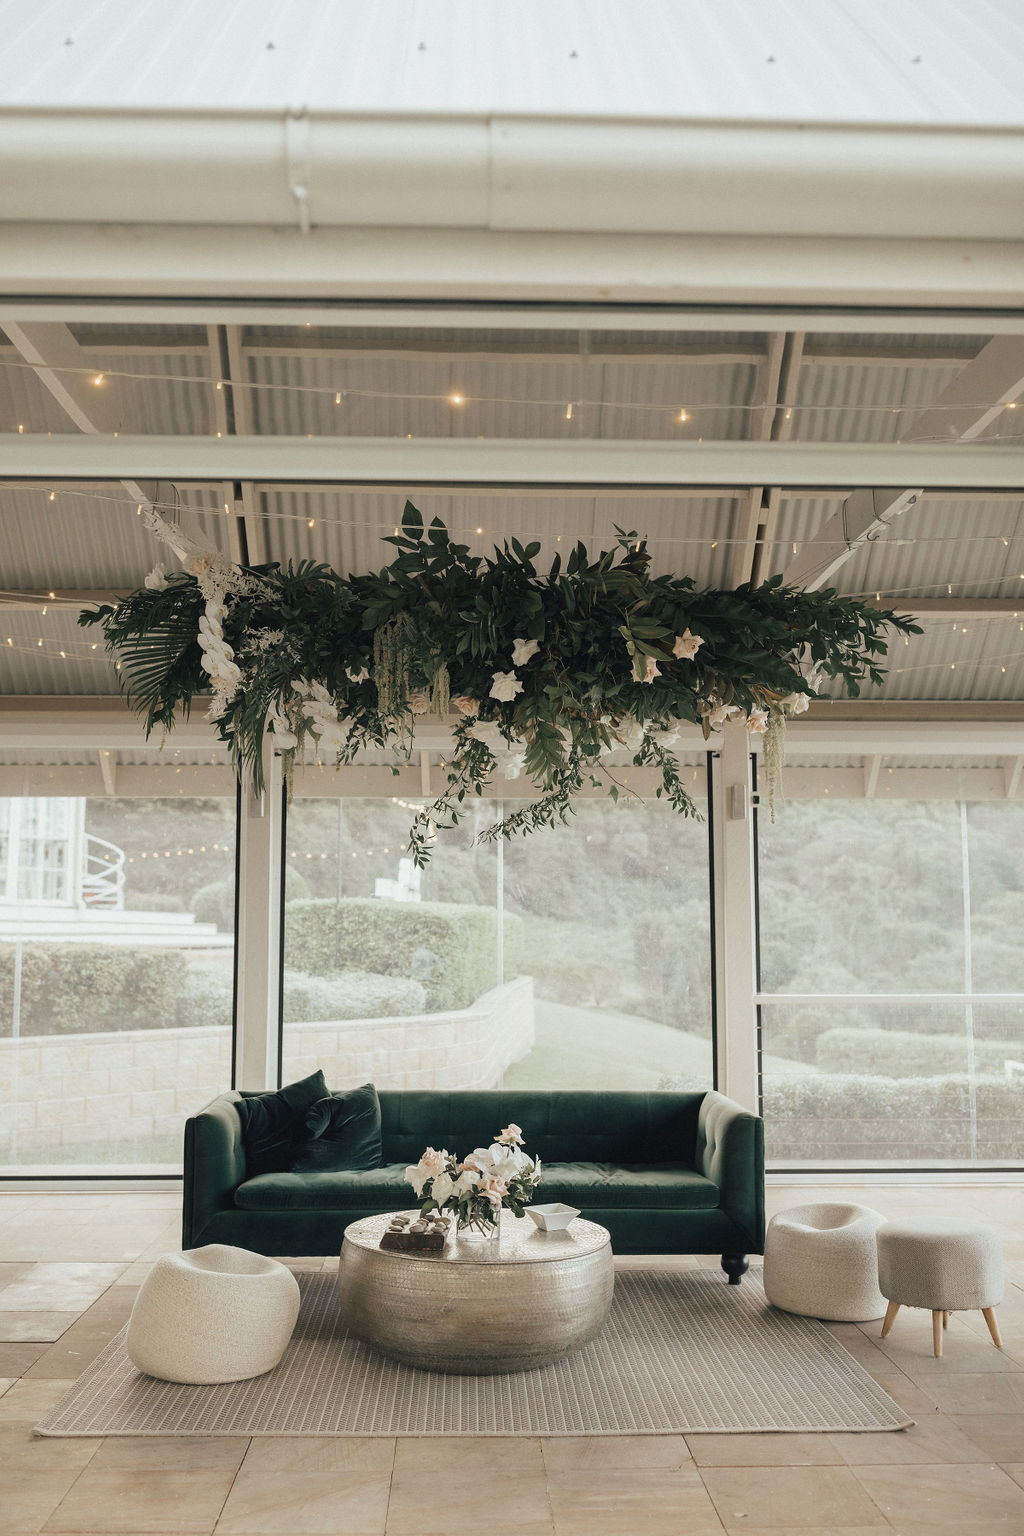 Hanging installation with tropical greenery and orchids